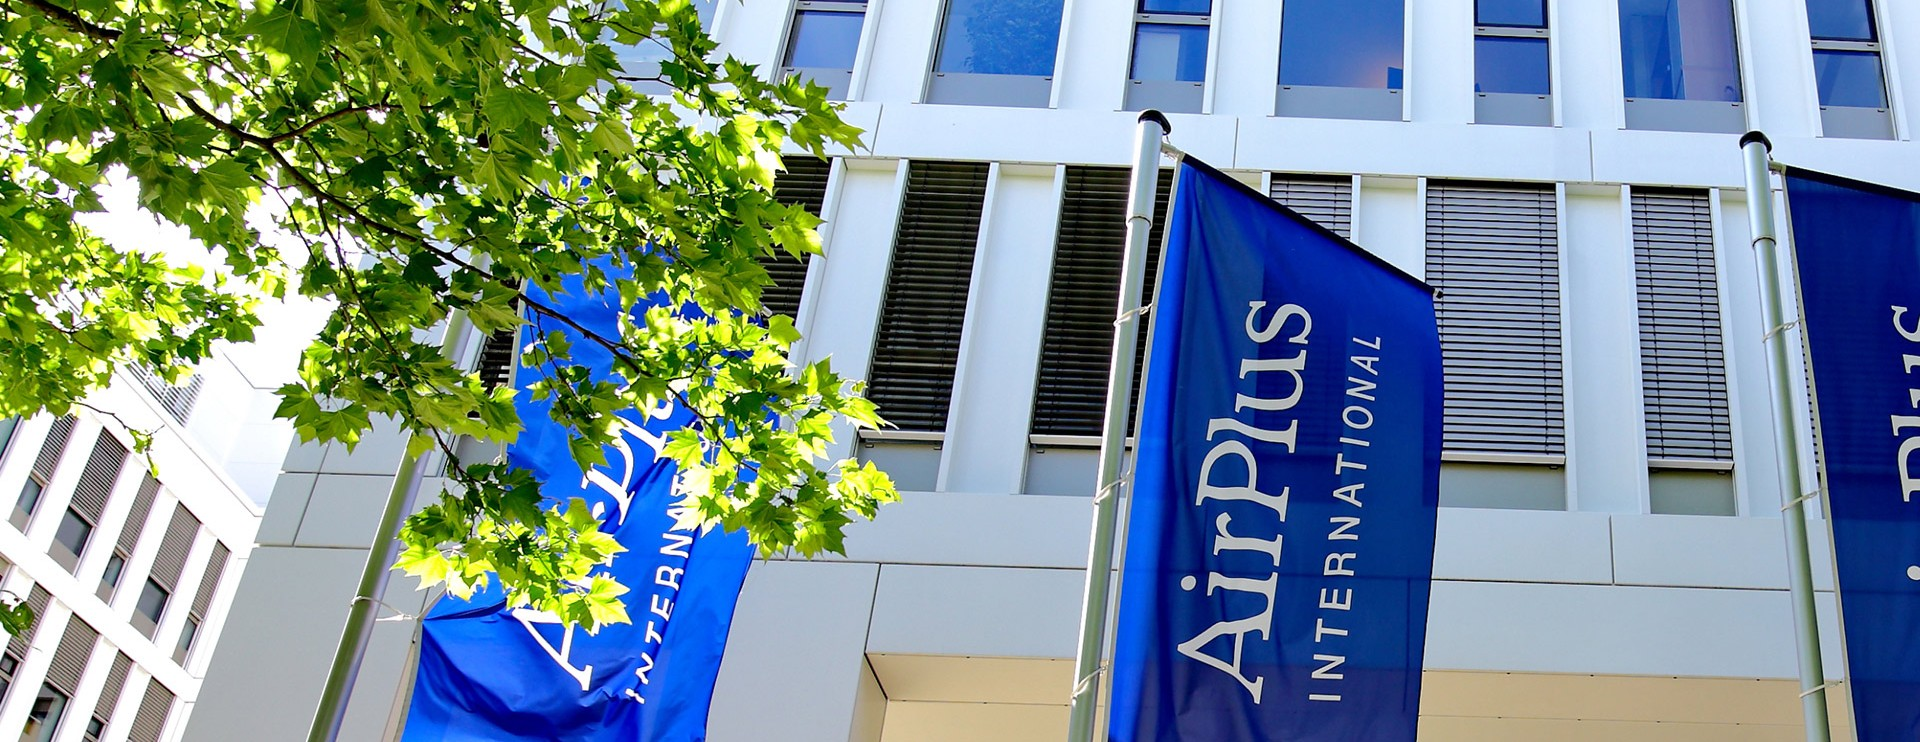 Two blue flags with AirPlus on in front of a building